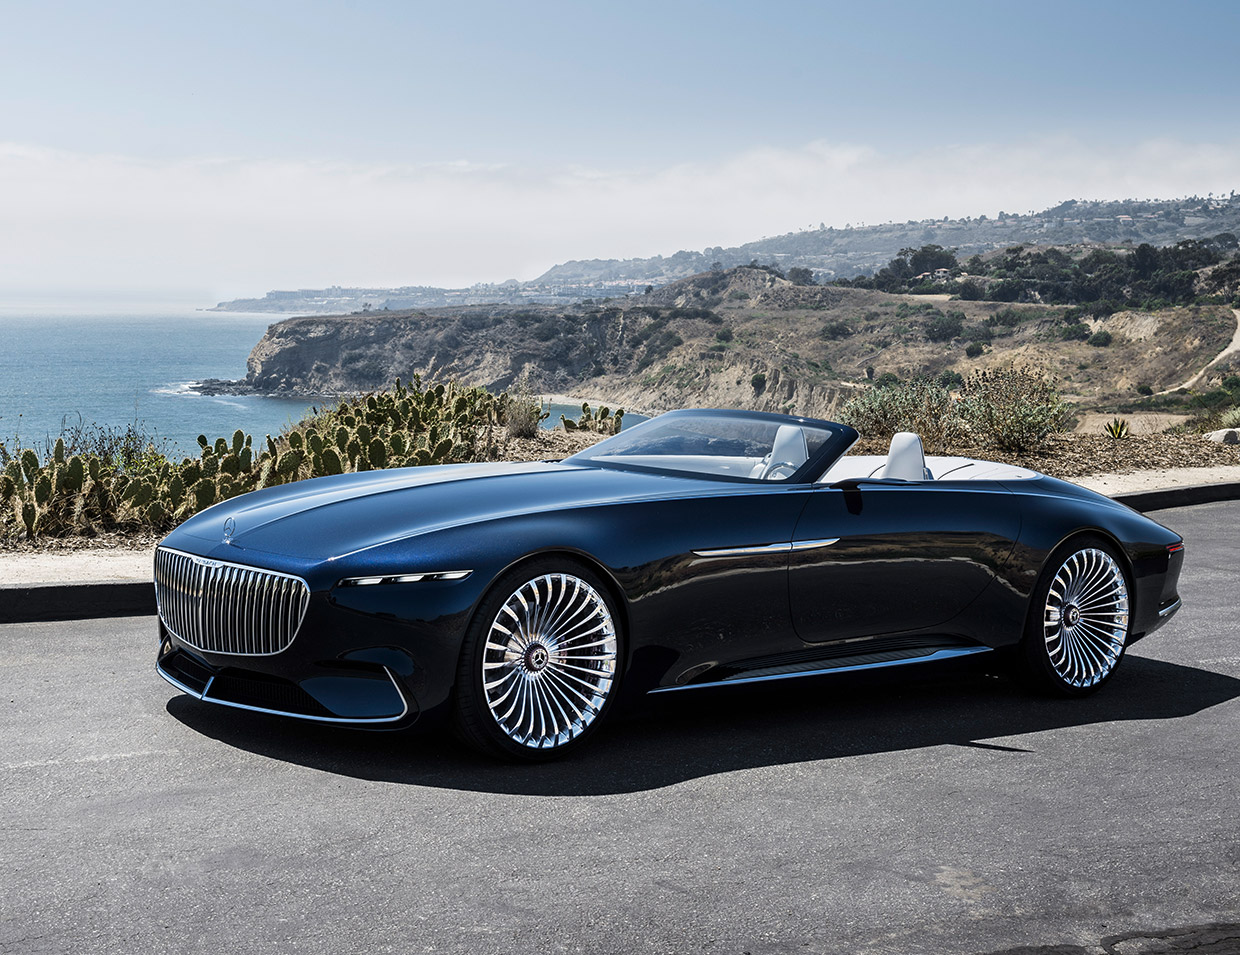 vision mercedes maybach 6 cabriolet is a real land shark 95 octane. Black Bedroom Furniture Sets. Home Design Ideas